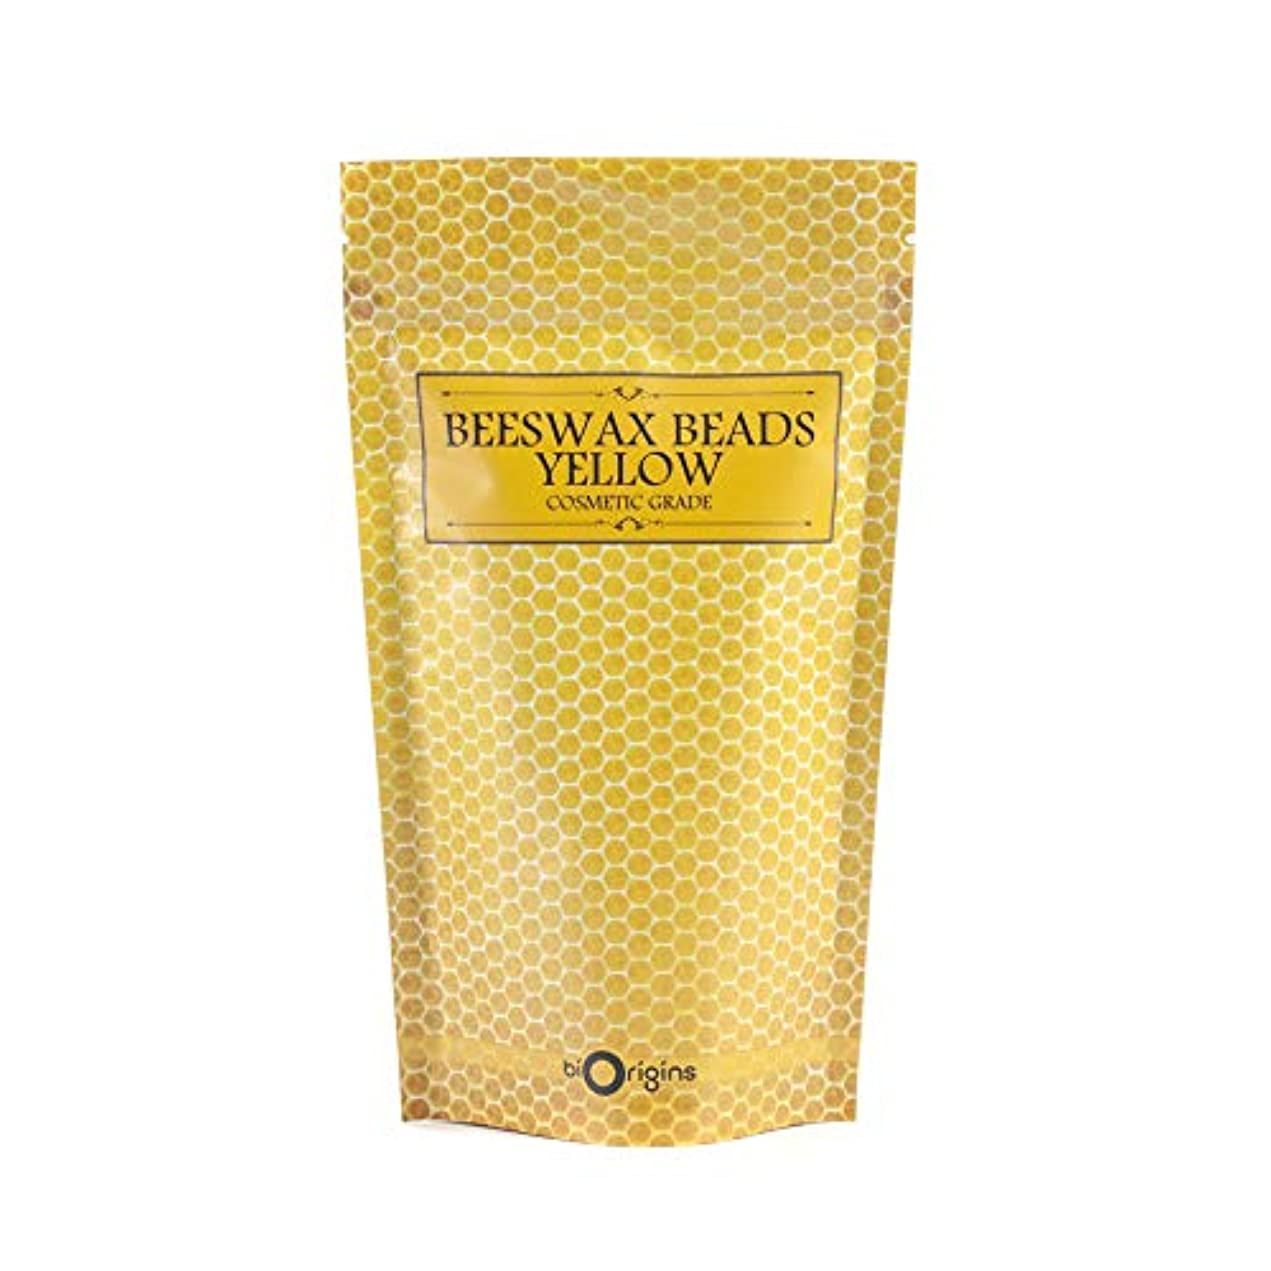 アプライアンス少ない合法Beeswax Beads Yellow - Cosmetic Grade - 100g